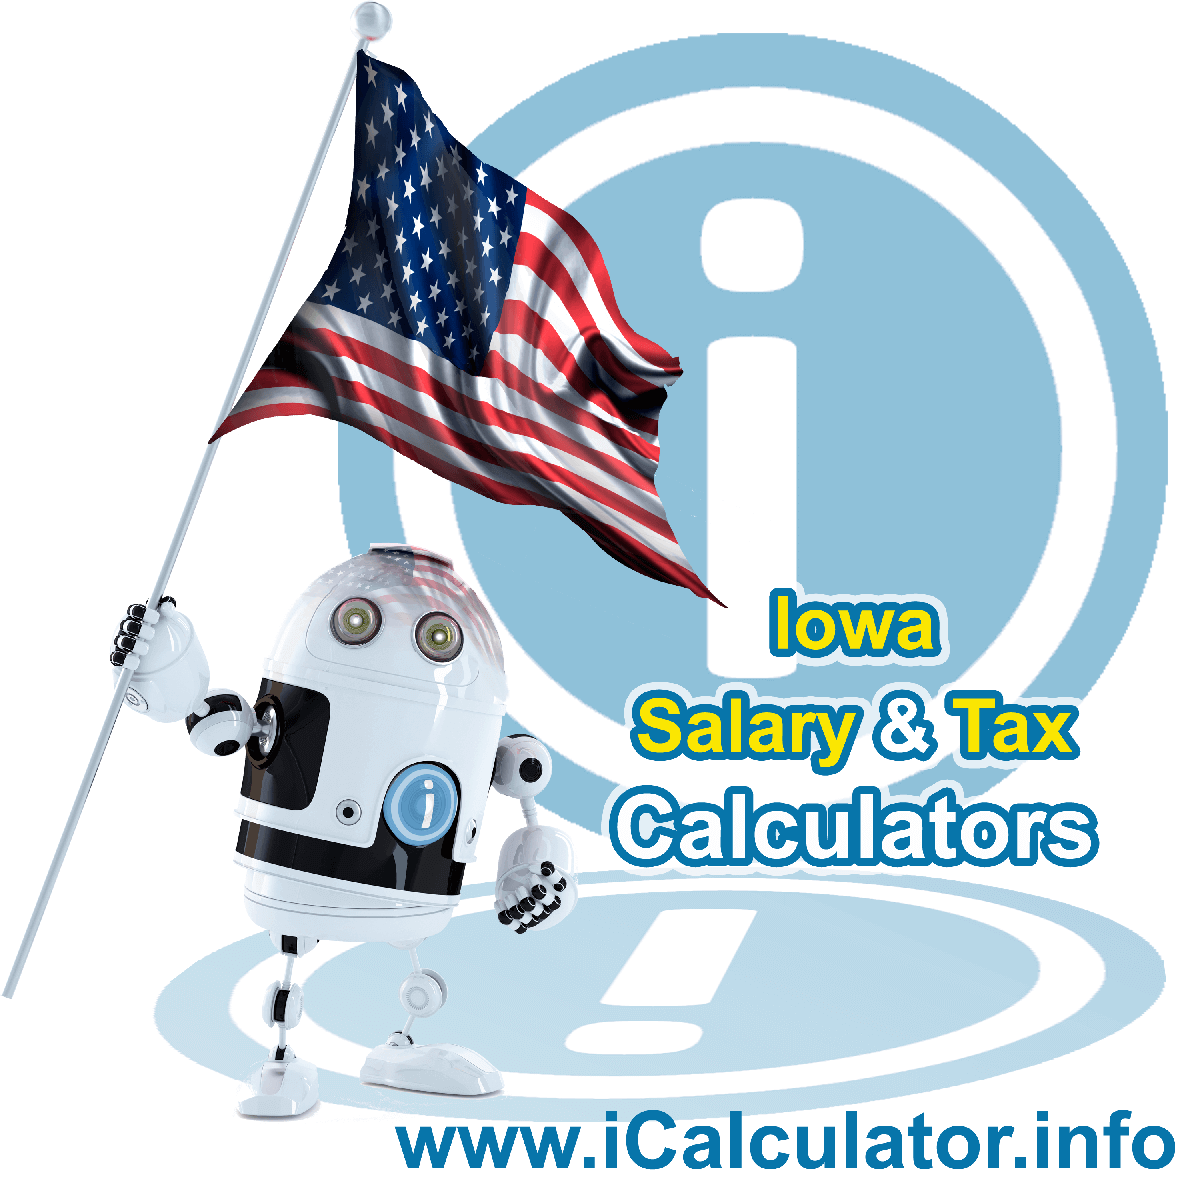 Iowa Salary Calculator 2020 | iCalculator | The Iowa Salary Calculator allows you to quickly calculate your salary after tax including Iowa State Tax, Federal State Tax, Medicare Deductions, Social Security, Capital Gains and other income tax and salary deductions complete with supporting Iowa state tax tables